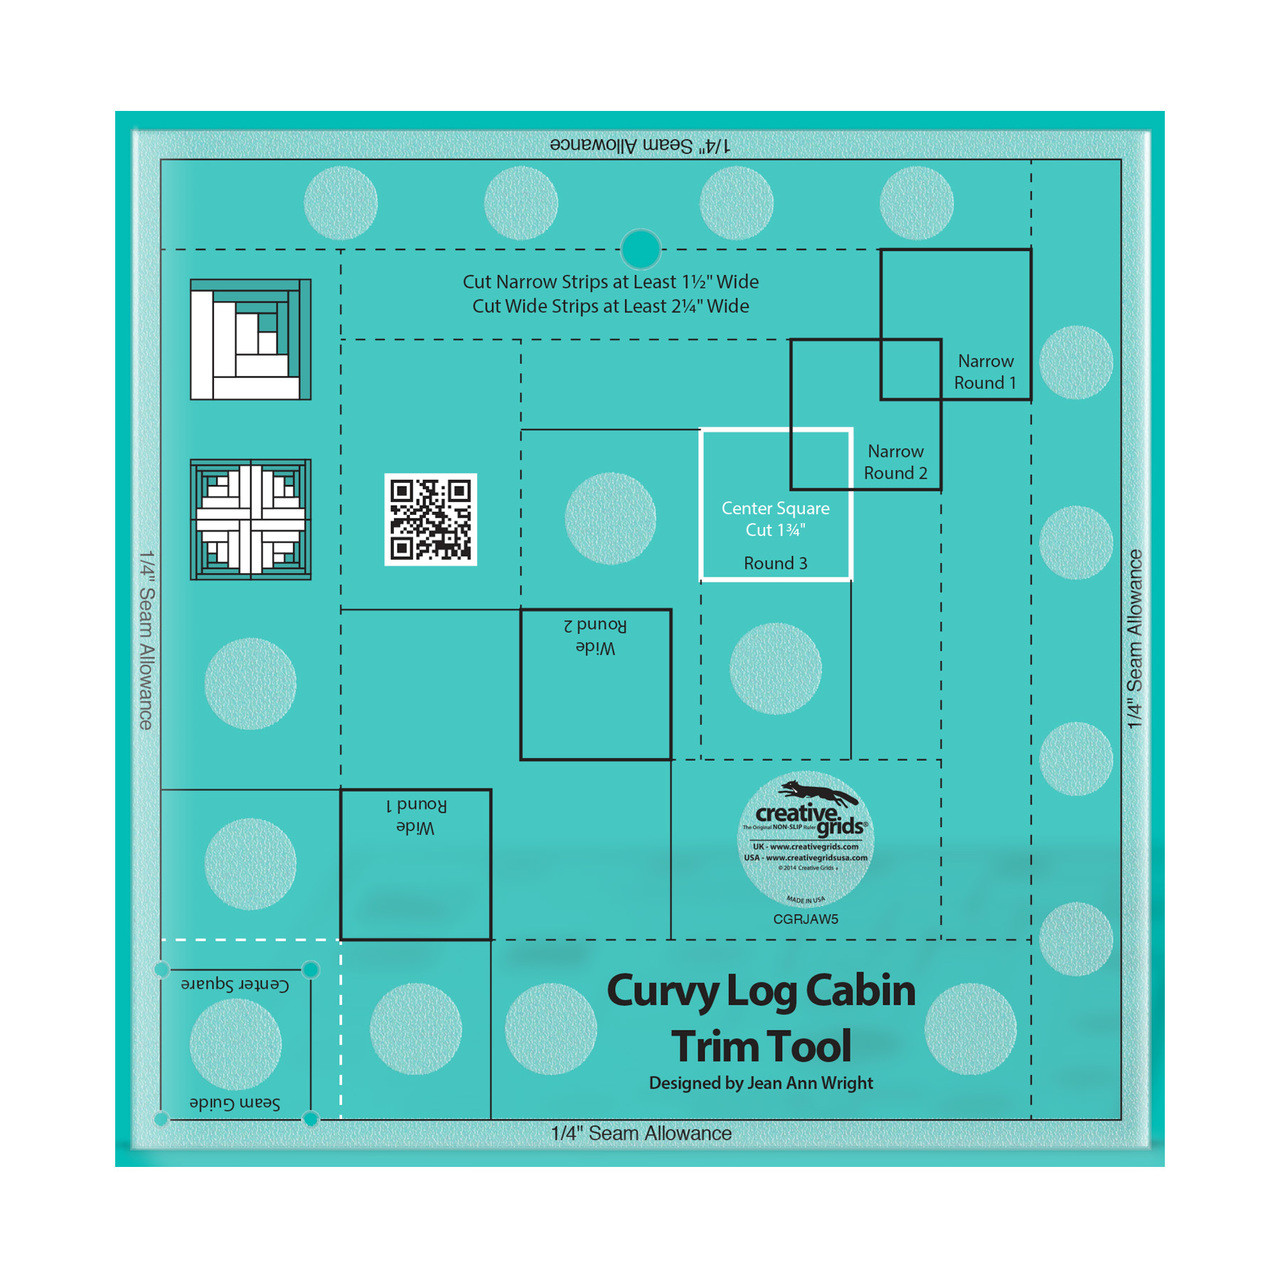 Creative Grids Curvy Log Cabin Trim Tool Quilting Ruler Template For 6in Finished Blocks